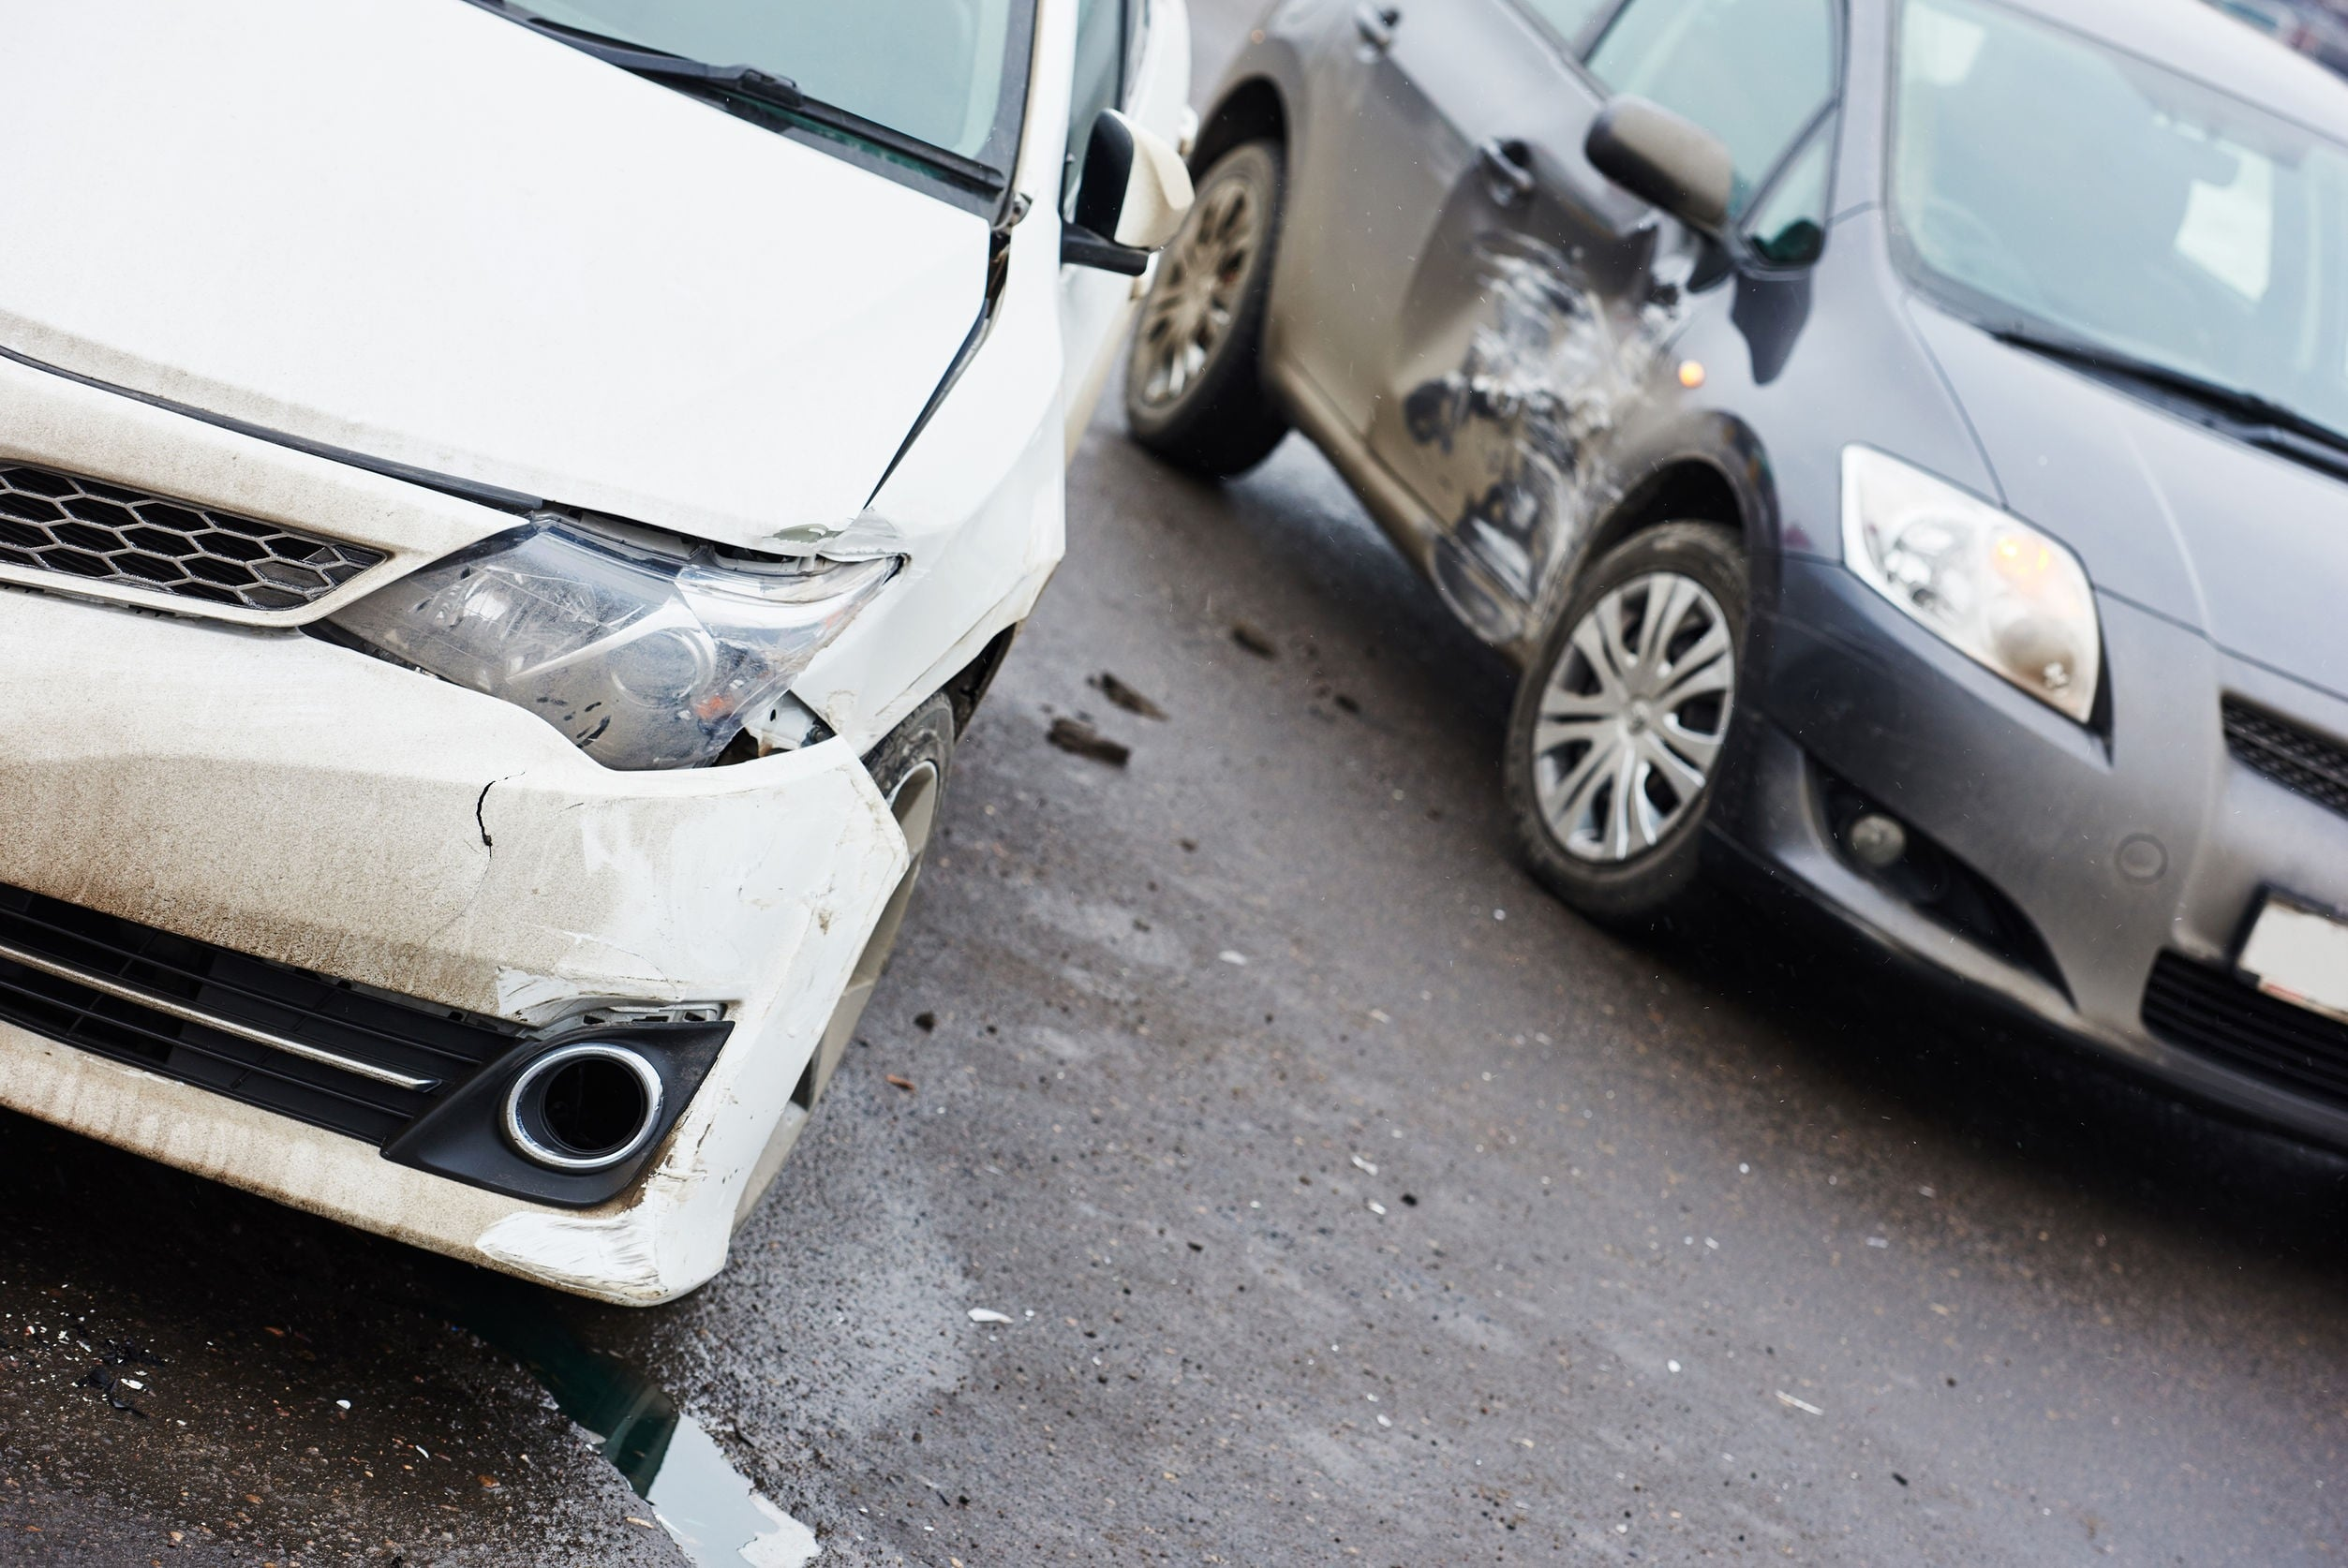 Florida's Pure Comparative Negligence Law Can Reduce Compensation